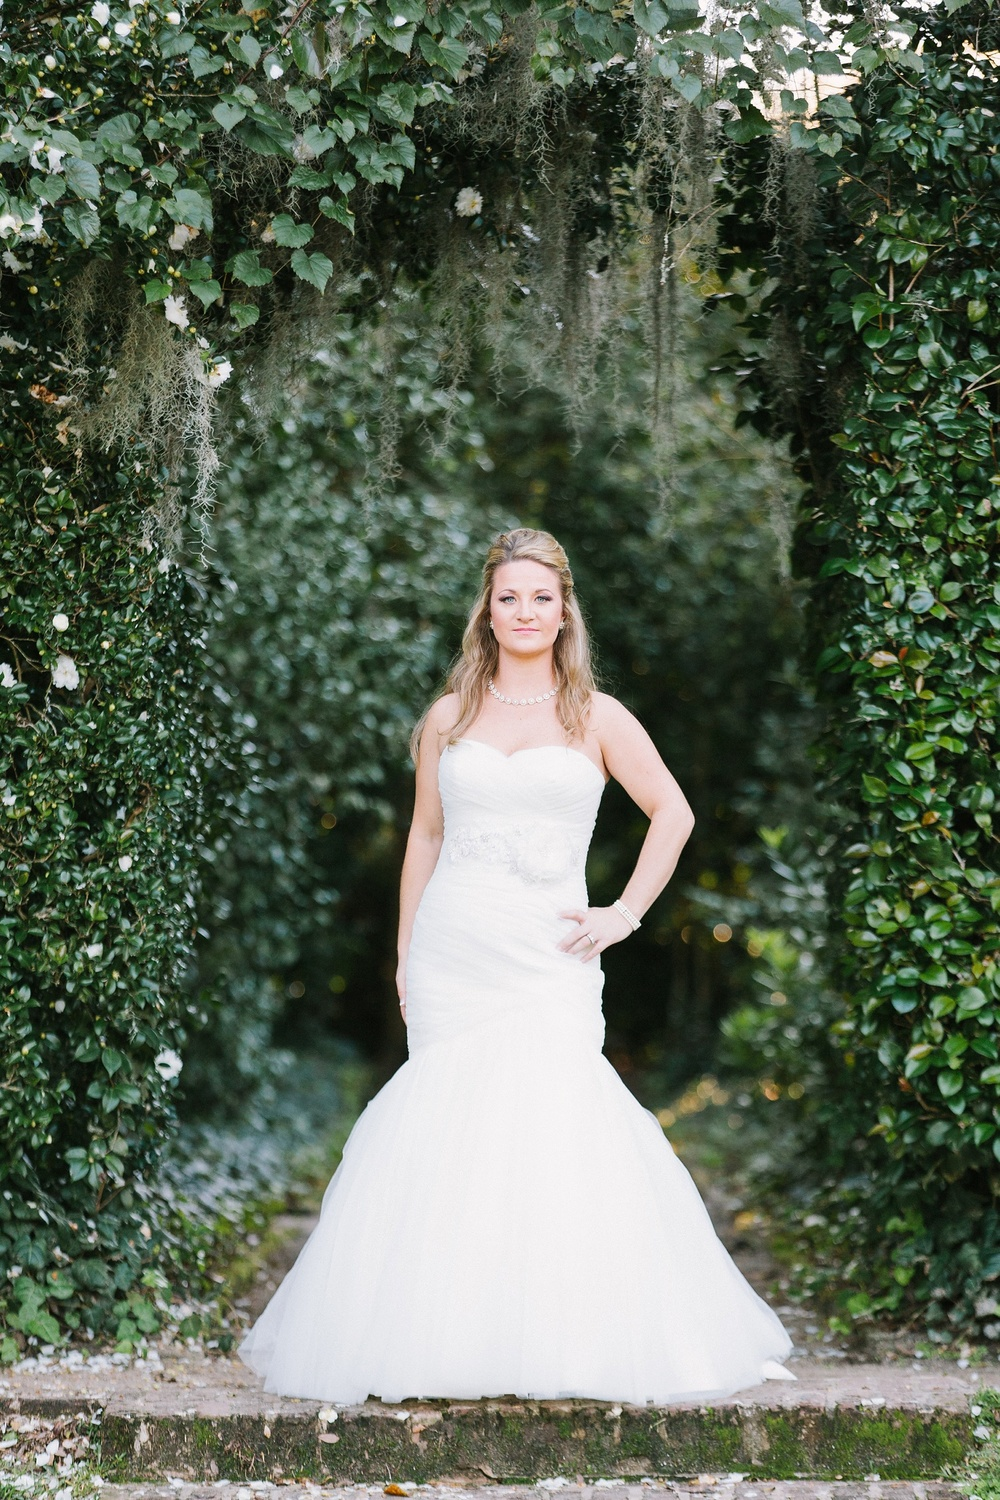 Lindsey_A_Miller_photography_bridal_portrait_middleton_plantation_charleston_sunset_spanish_moss_004.jpg